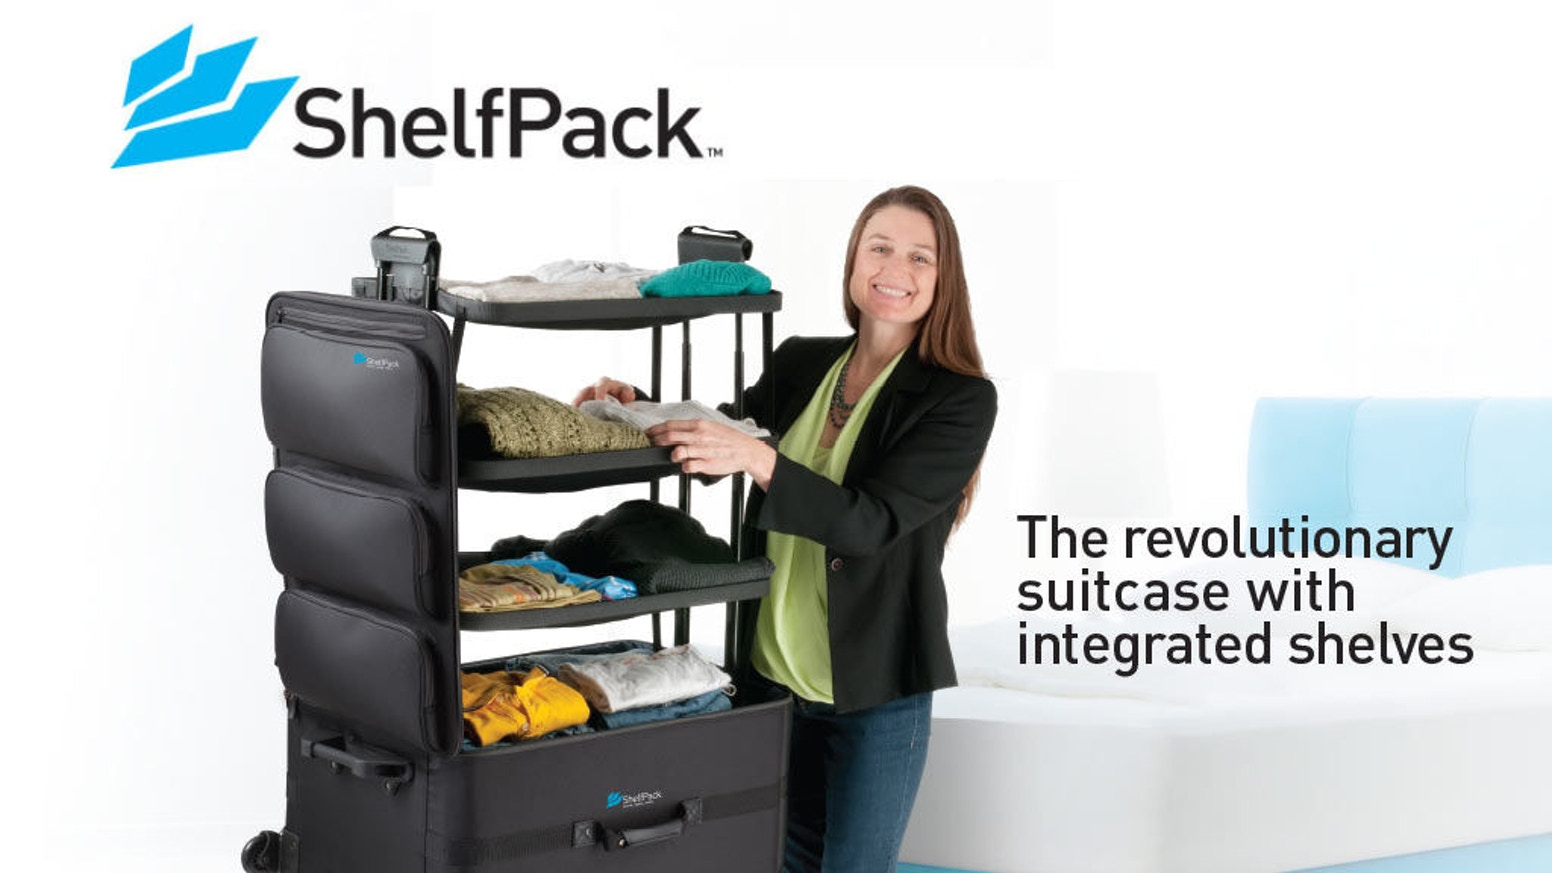 Shelfpack The Innovative New Luggage With Shelves That Makes All Your Gear Visible And Accessible